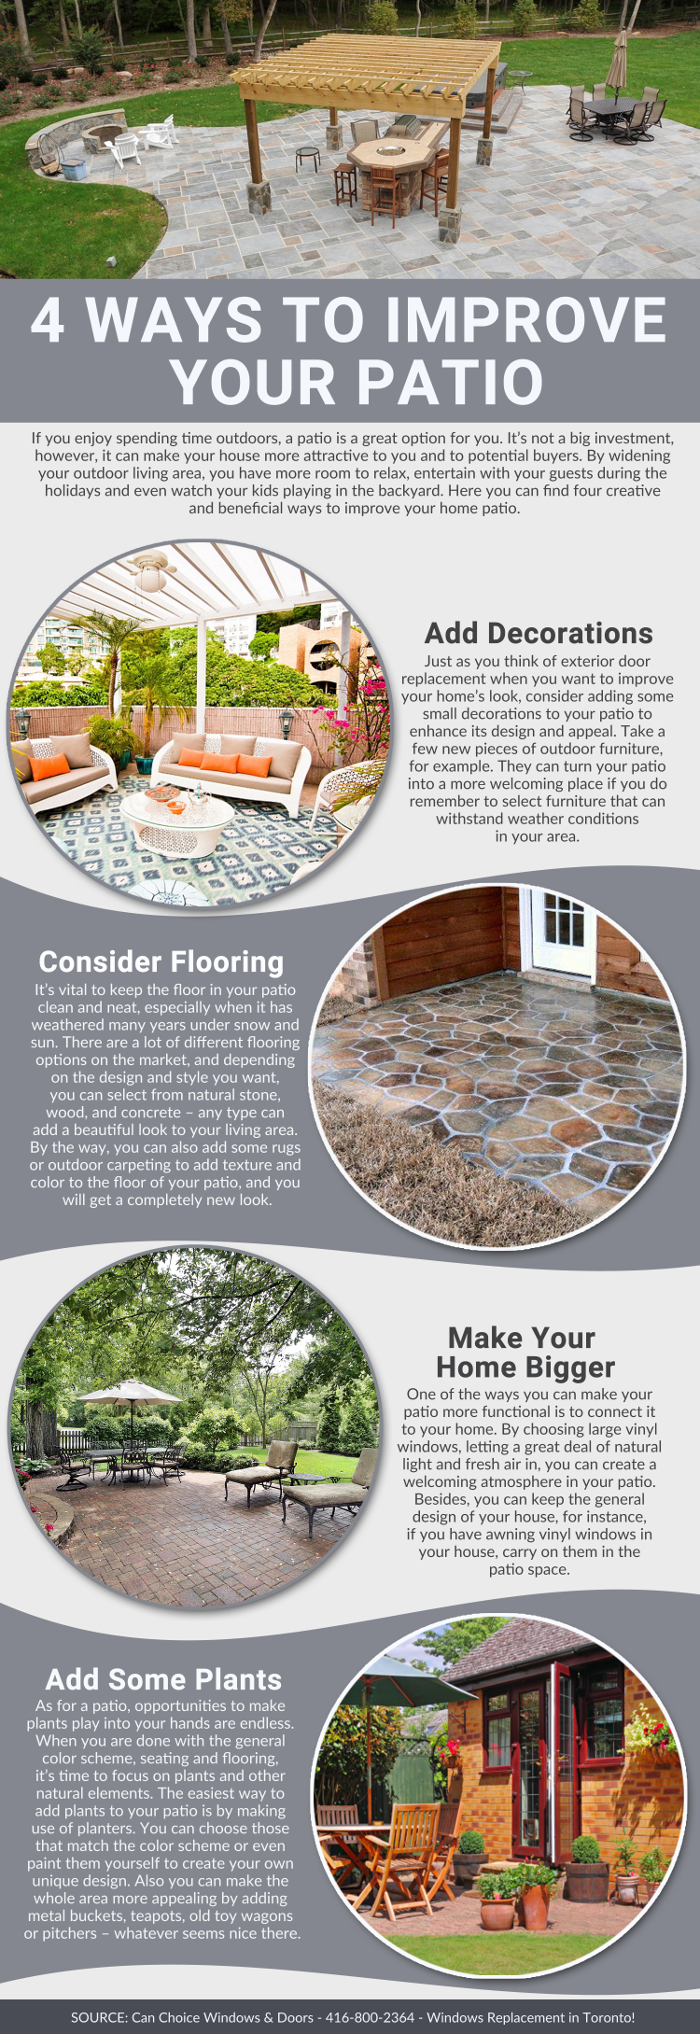 4 Ways To Improve Your Patio - Infographic